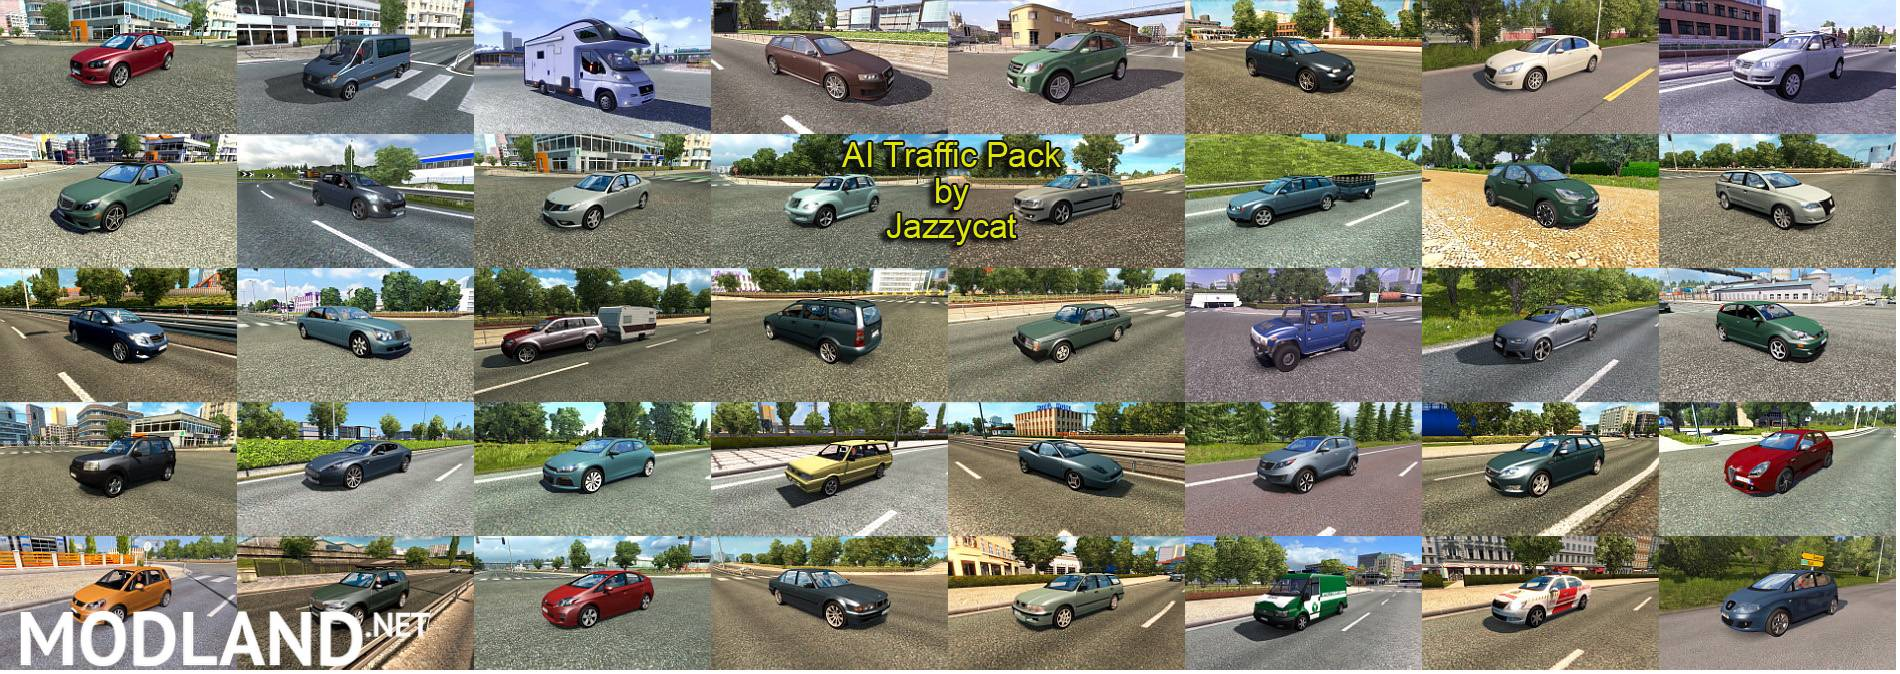 AI Traffic Pack by Jazzycat v 7 3 mod for ETS 2